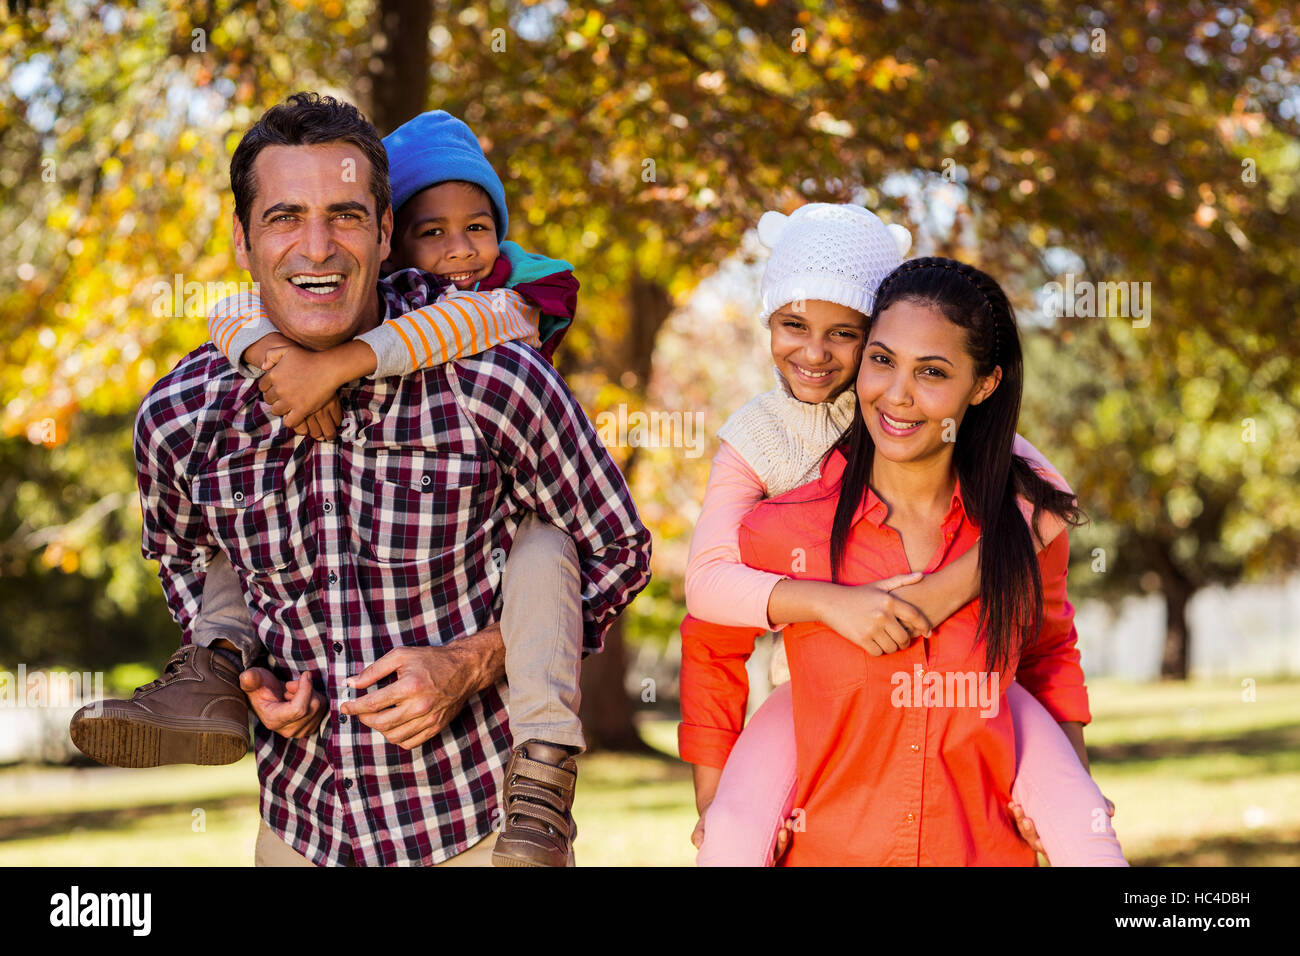 Parents piggybacking children at park - Stock Image